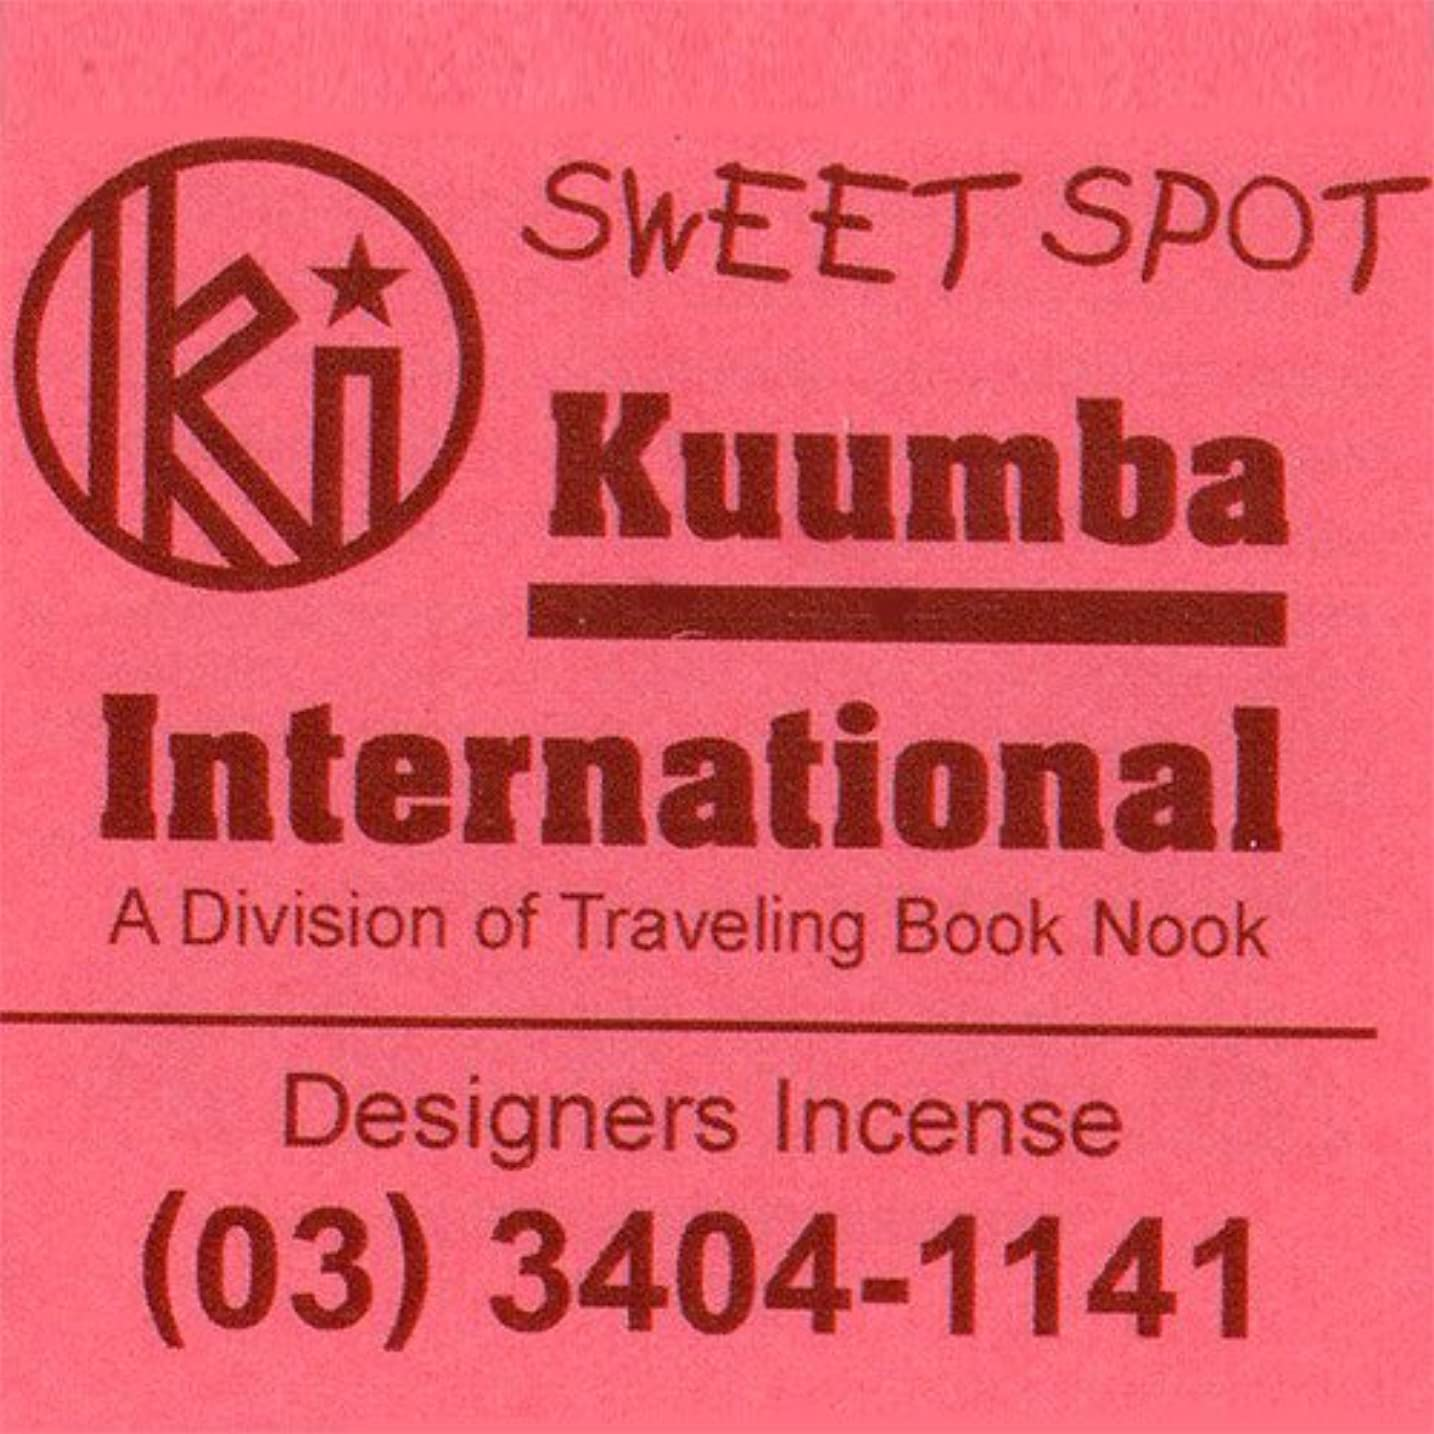 テラス二次喜劇KUUMBA / クンバ『incense』(SWEET SPOT) (Regular size)